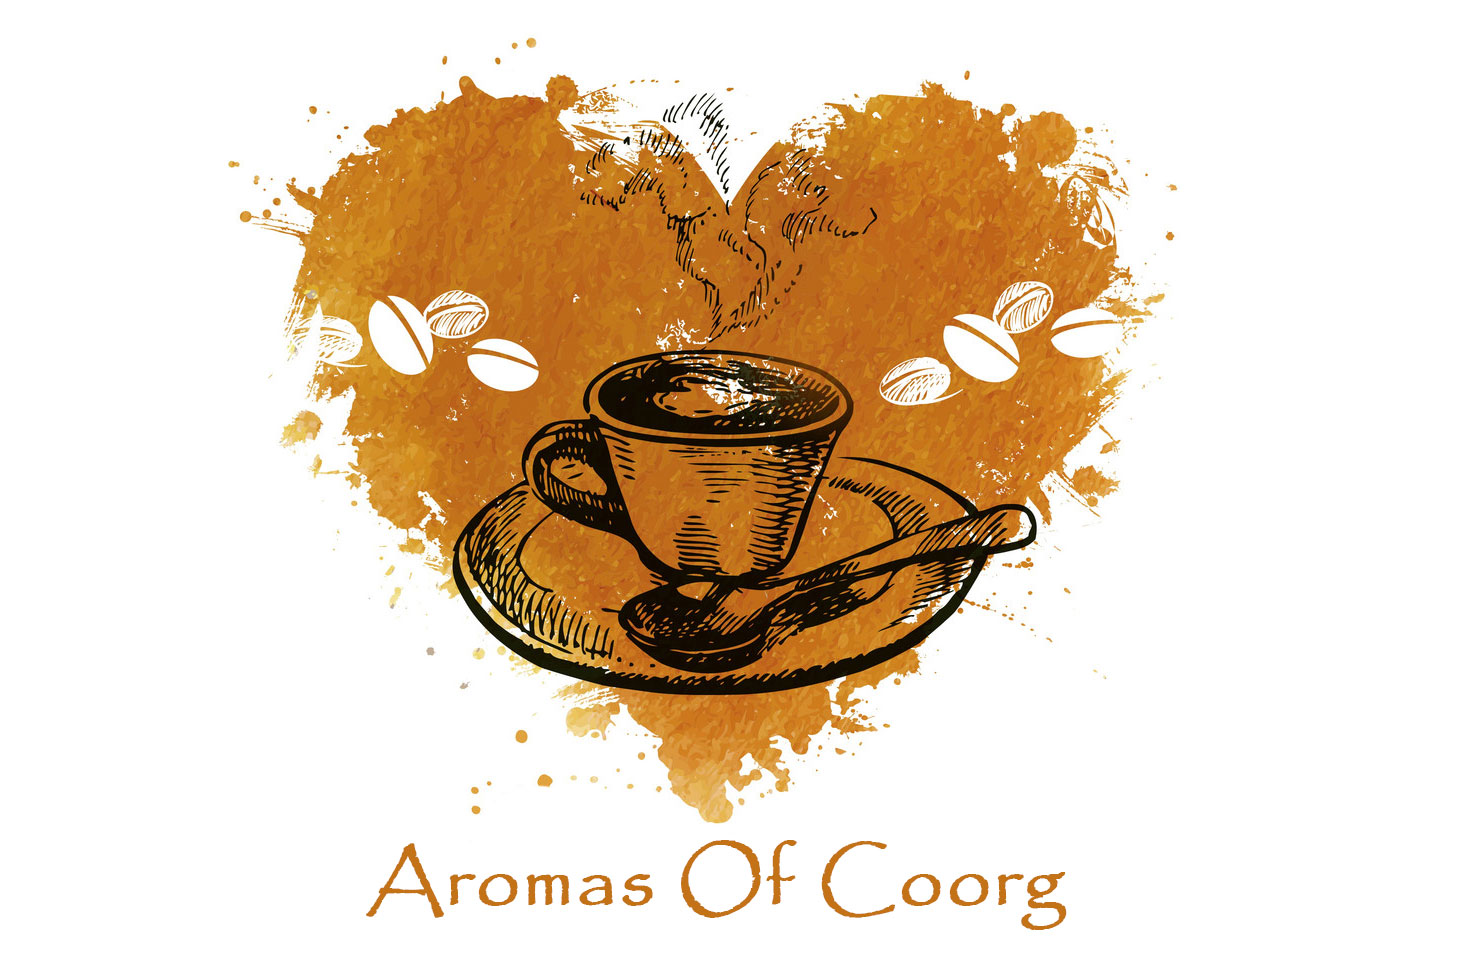 Aromas of coorg